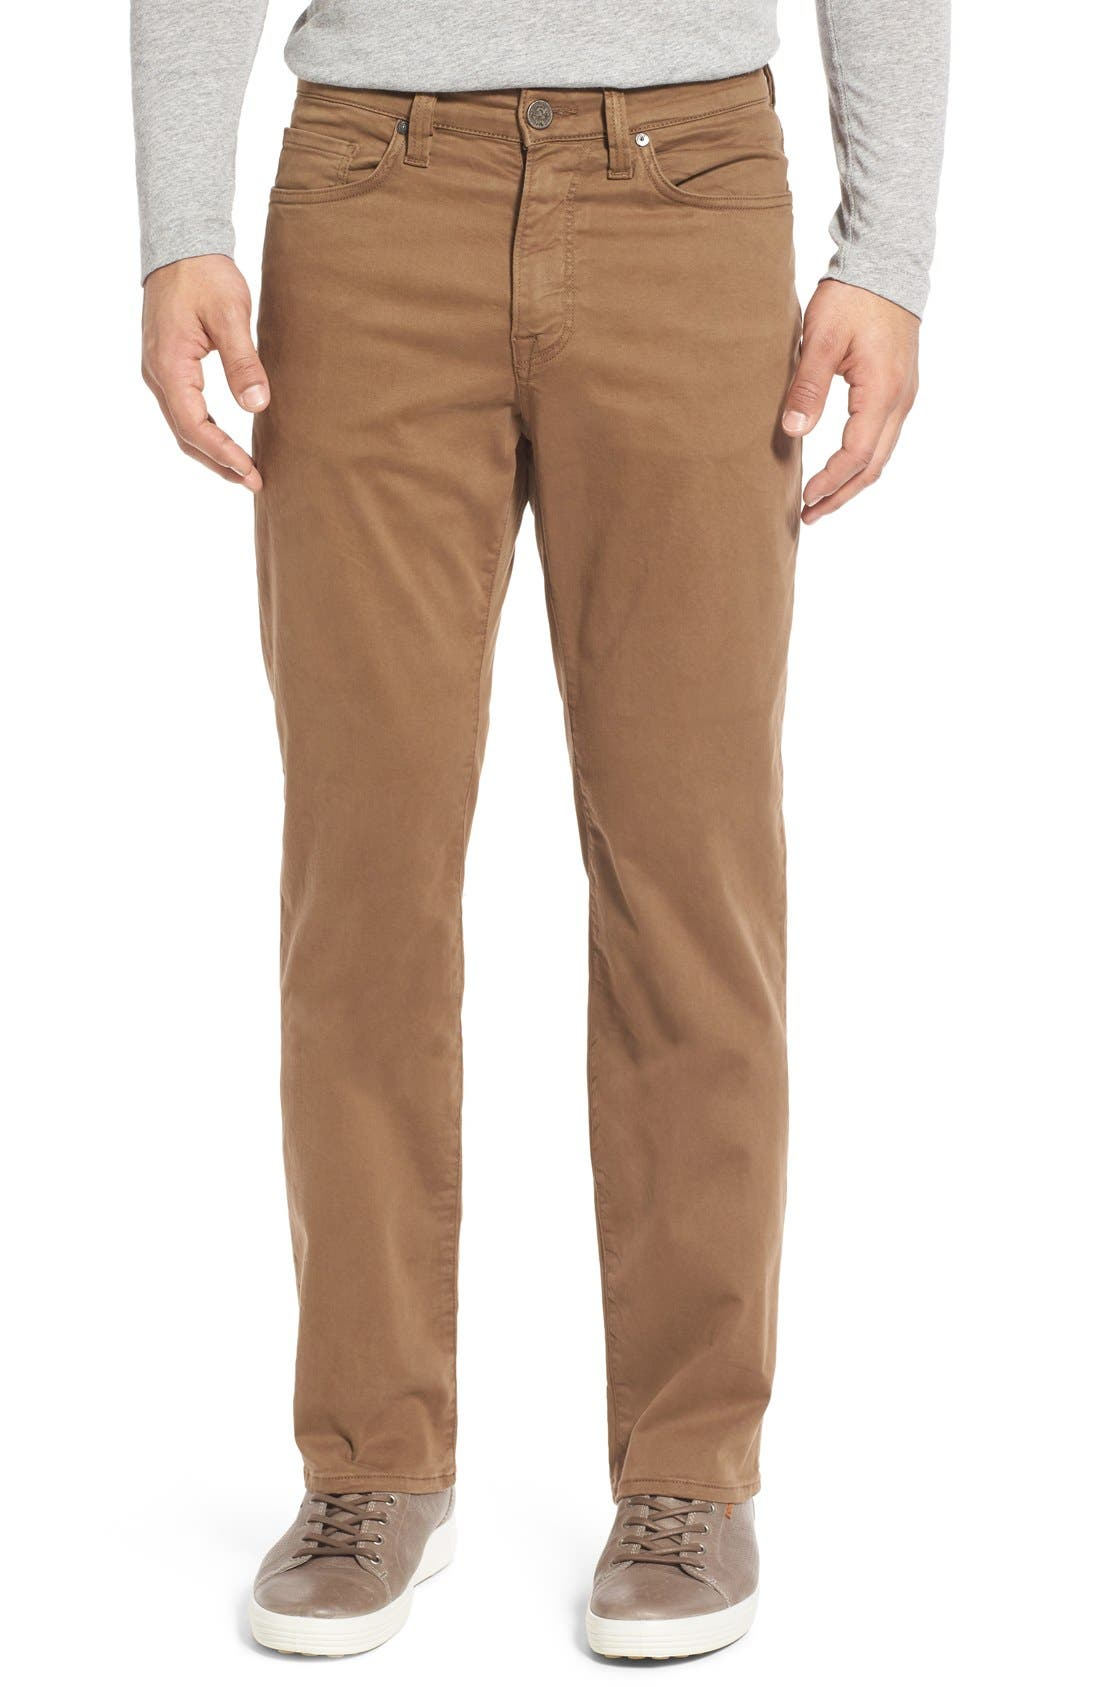 'Charisma' Relaxed Fit Jeans,                         Main,                         color, Arisma Tobacco Twill